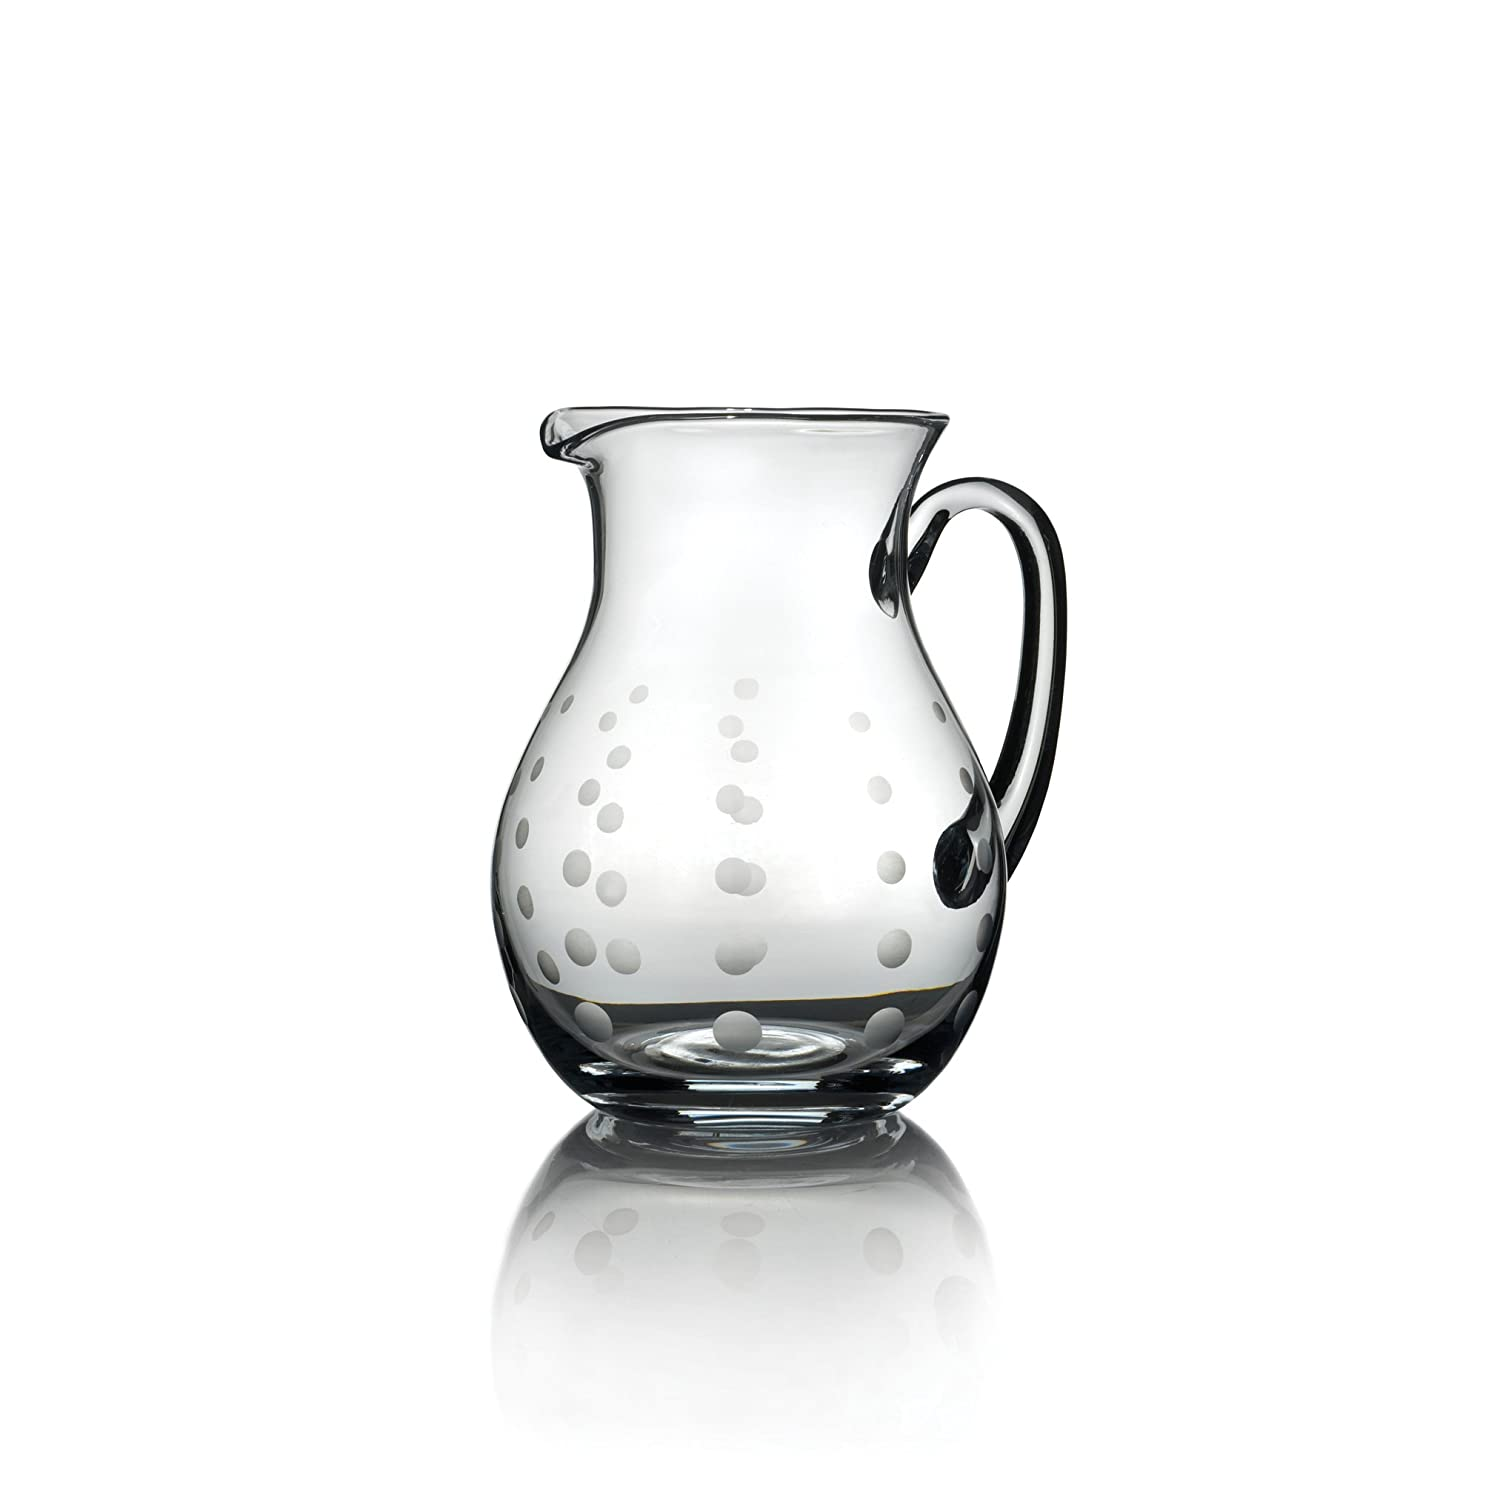 Mikasa Cheers Glass Beverage Pitcher, 3.25-Quart 5065536